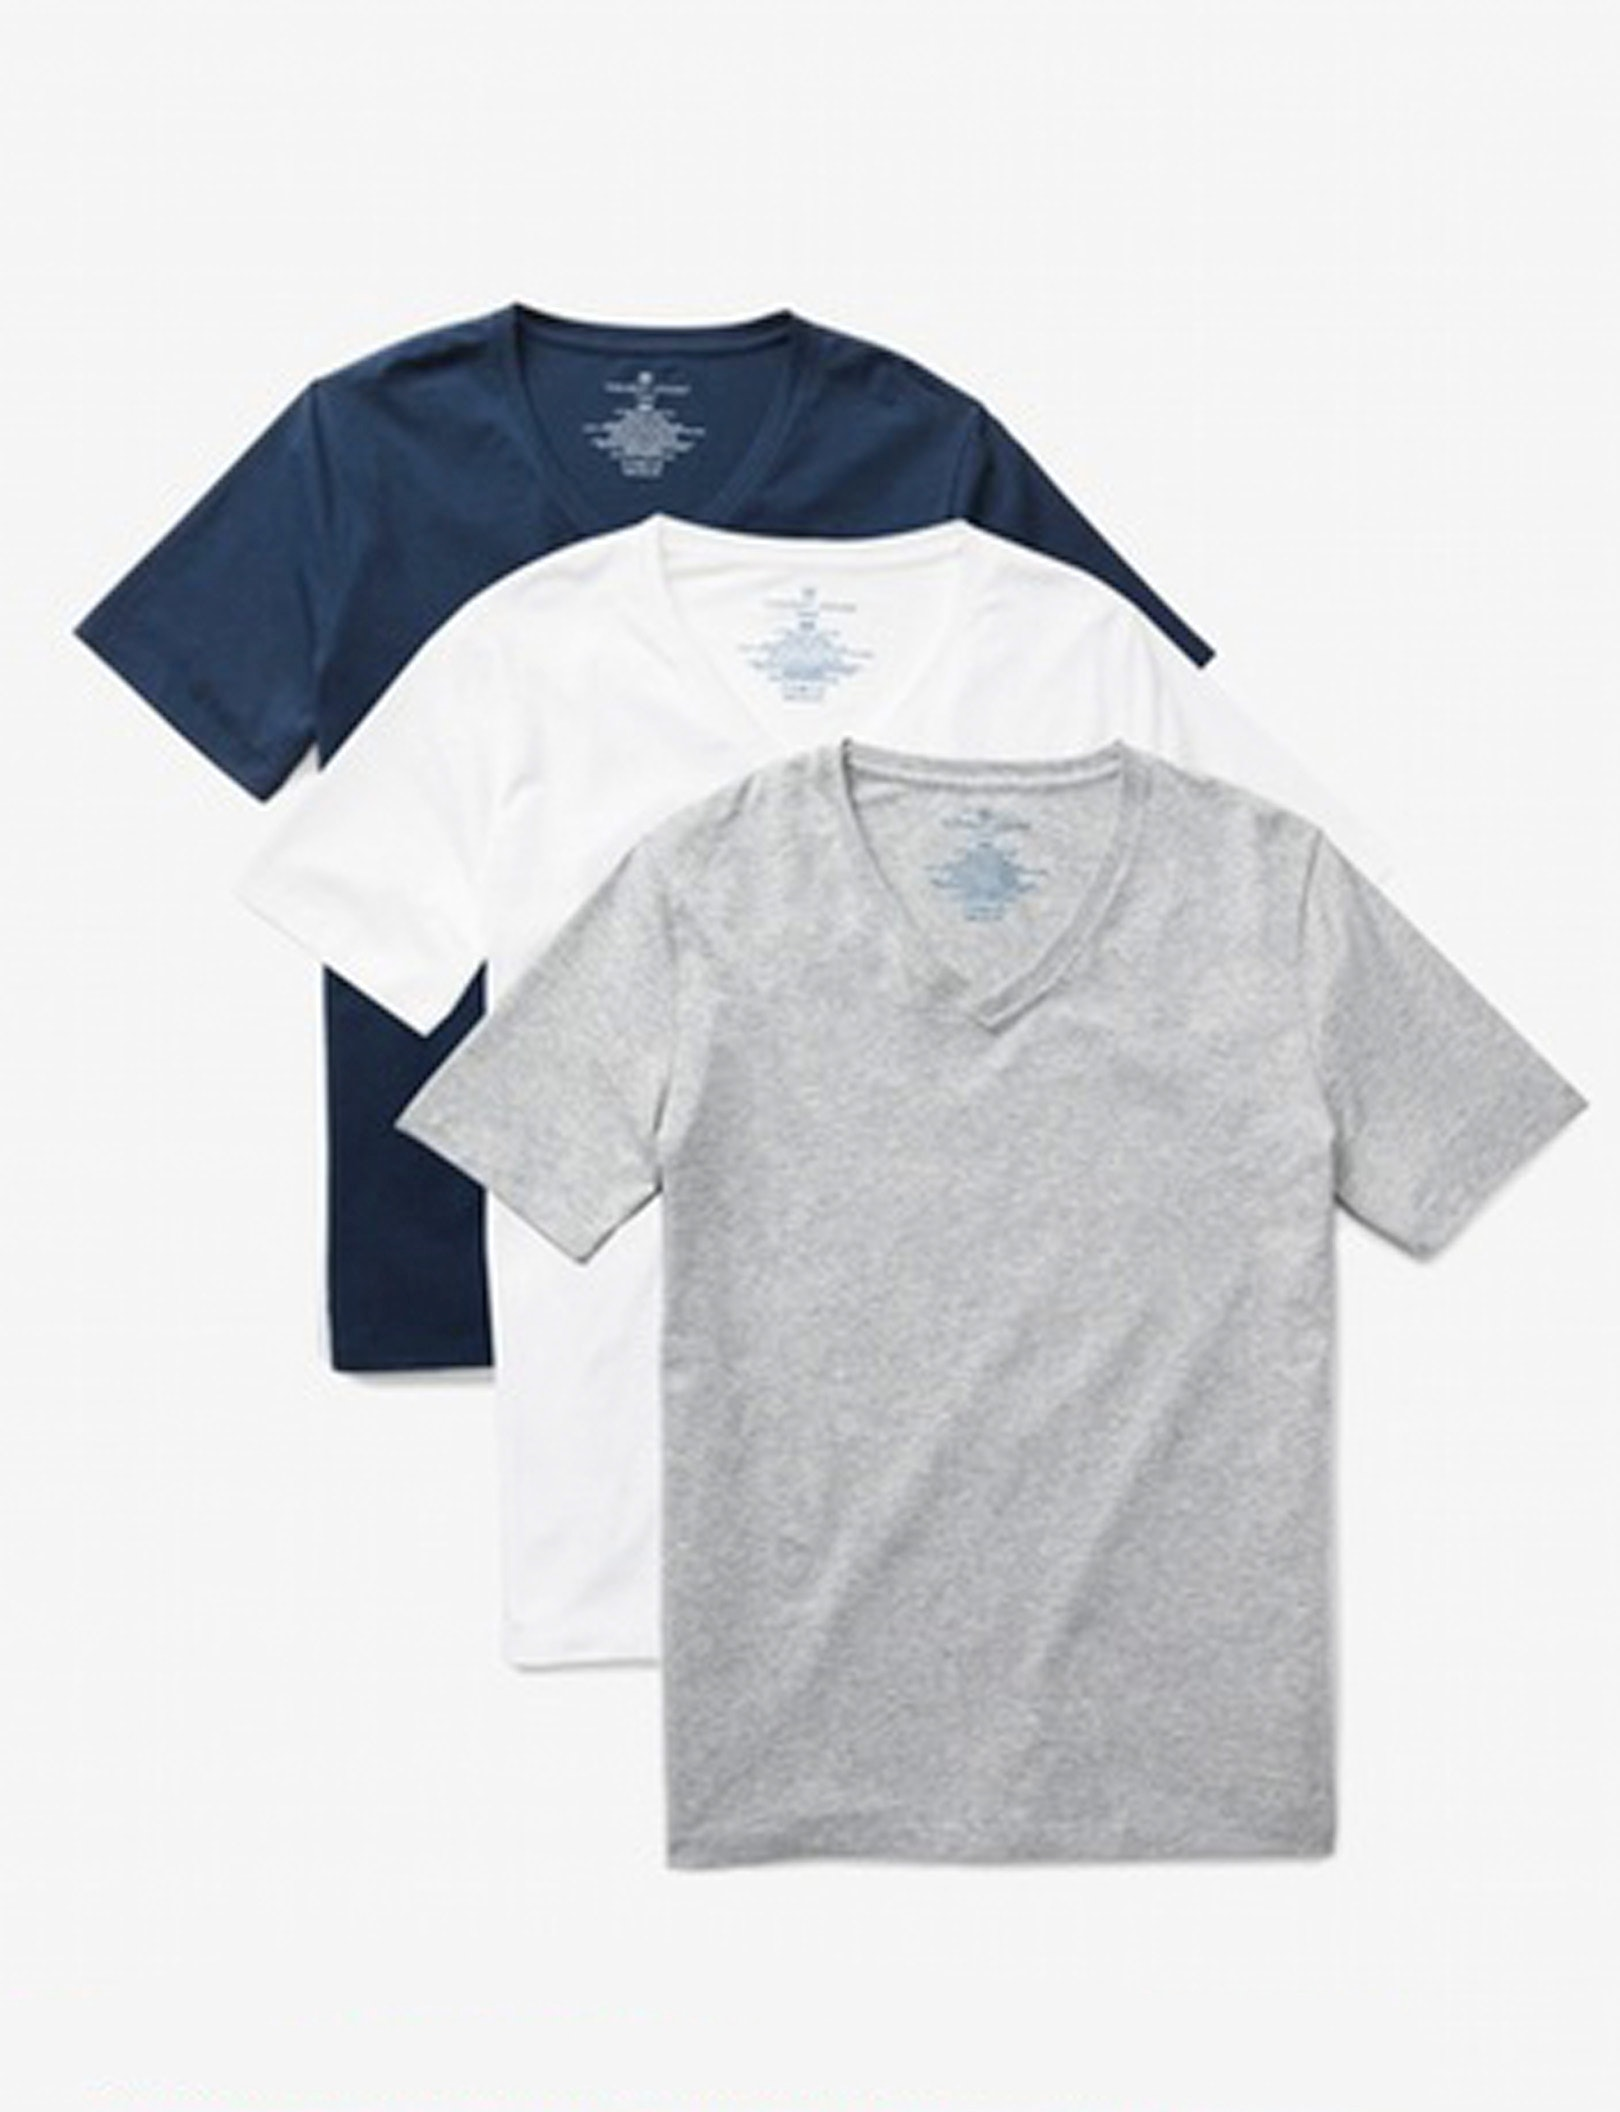 Shop Men's V-Neck T-Shirts Online | Tommy John